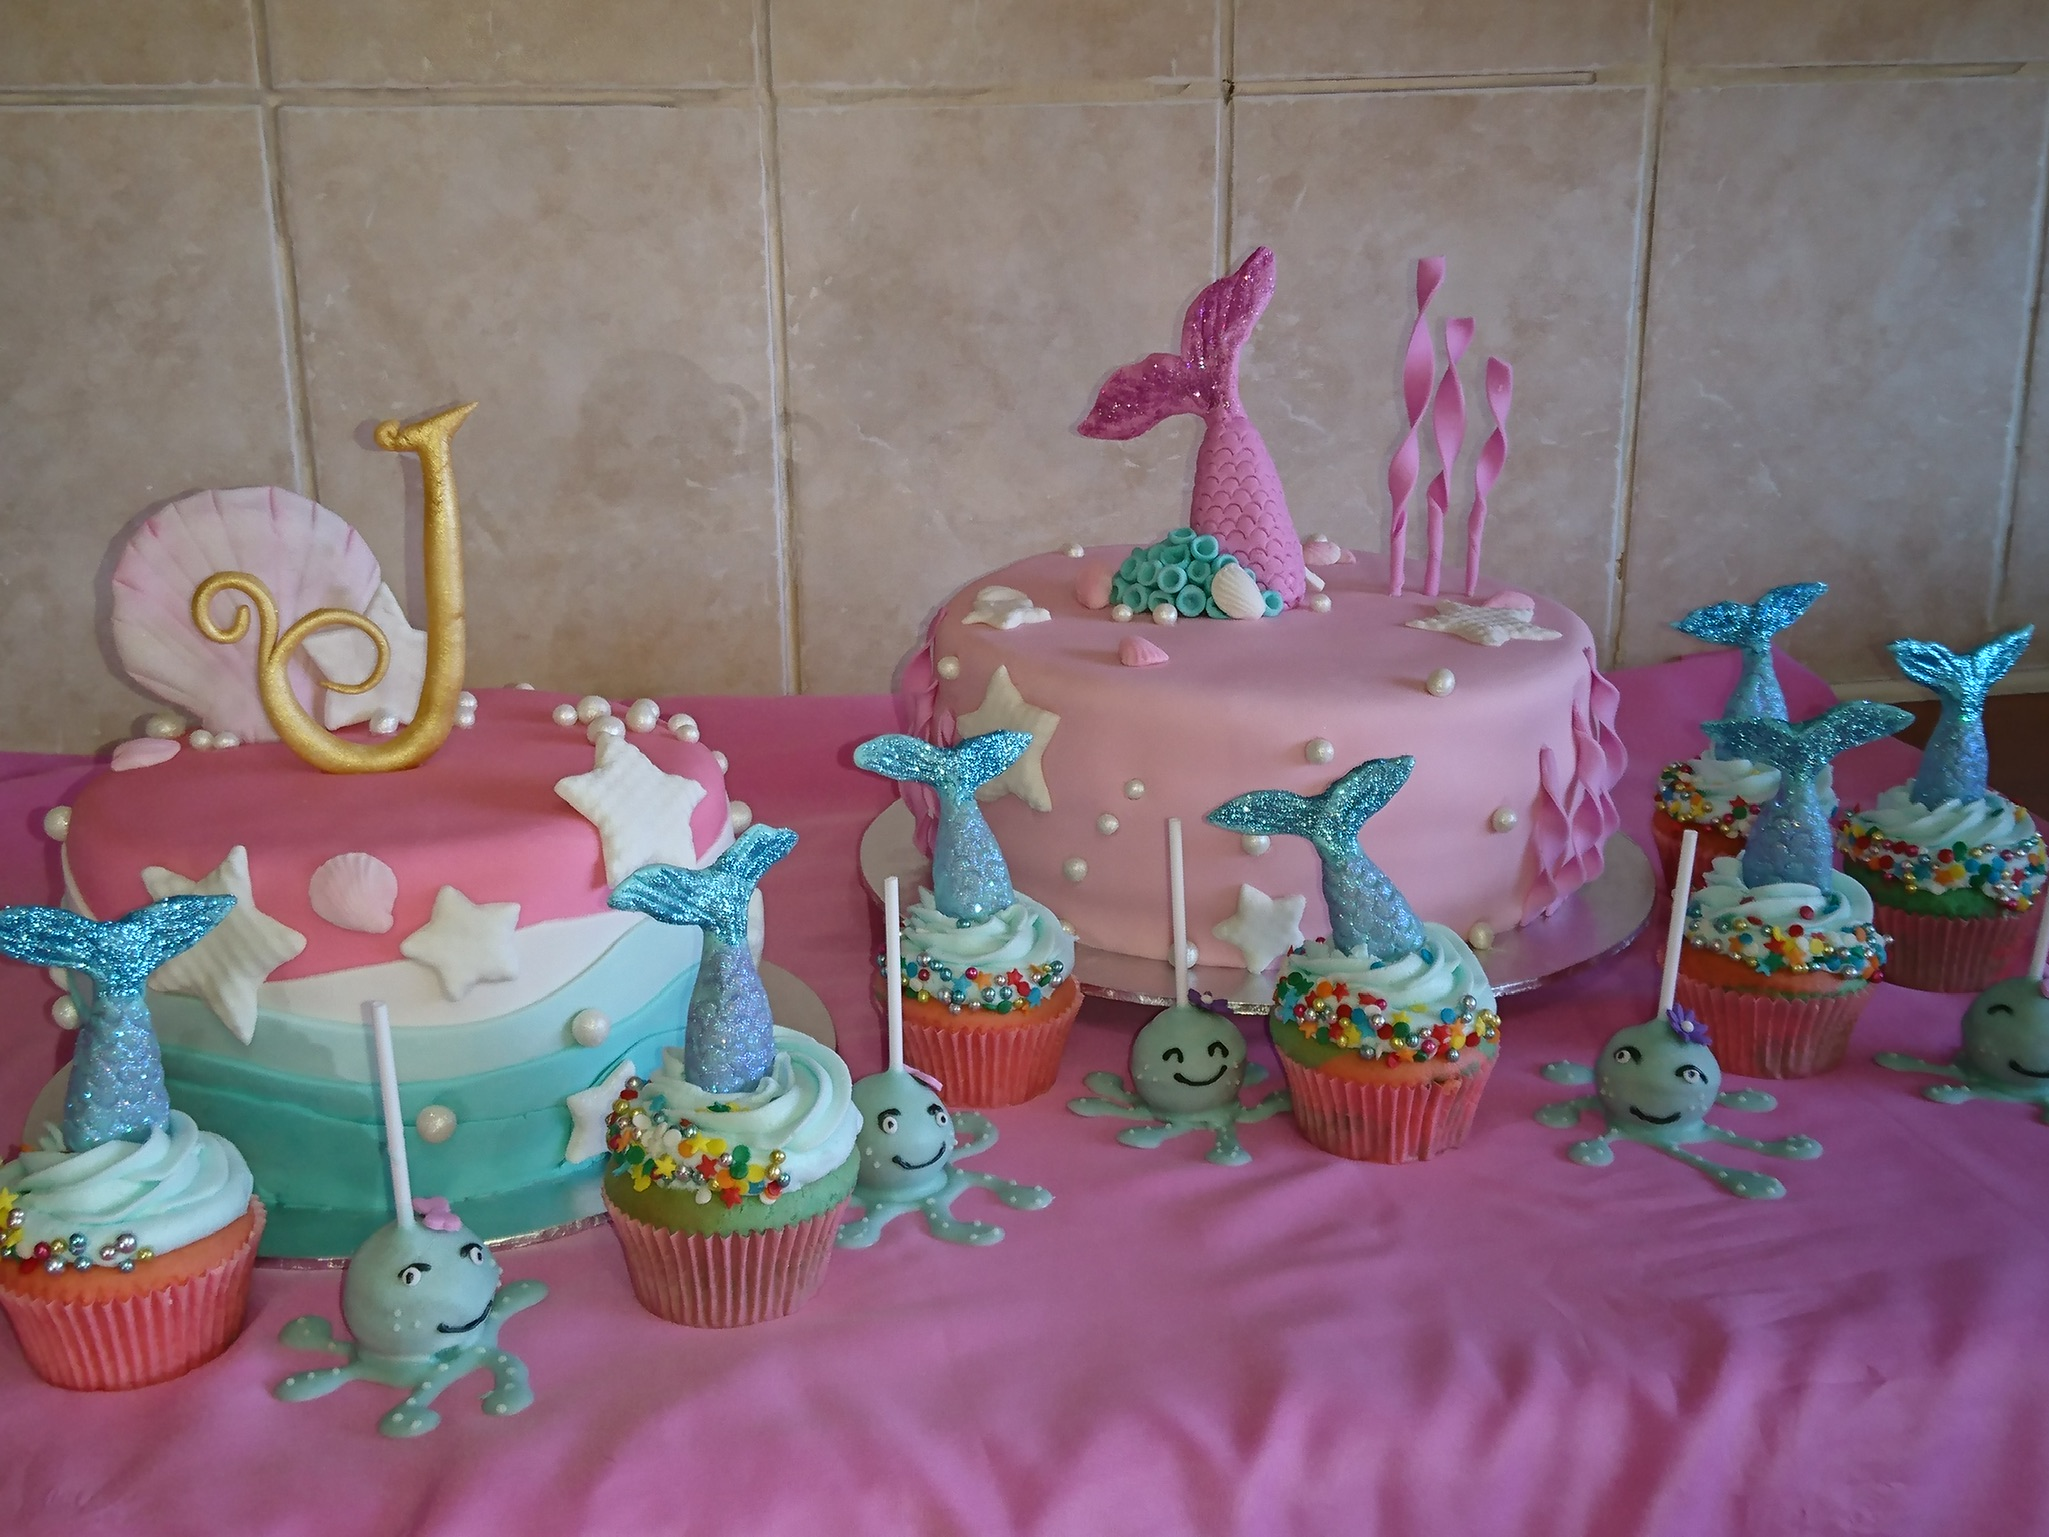 Mermaid Cake & Cupcakes